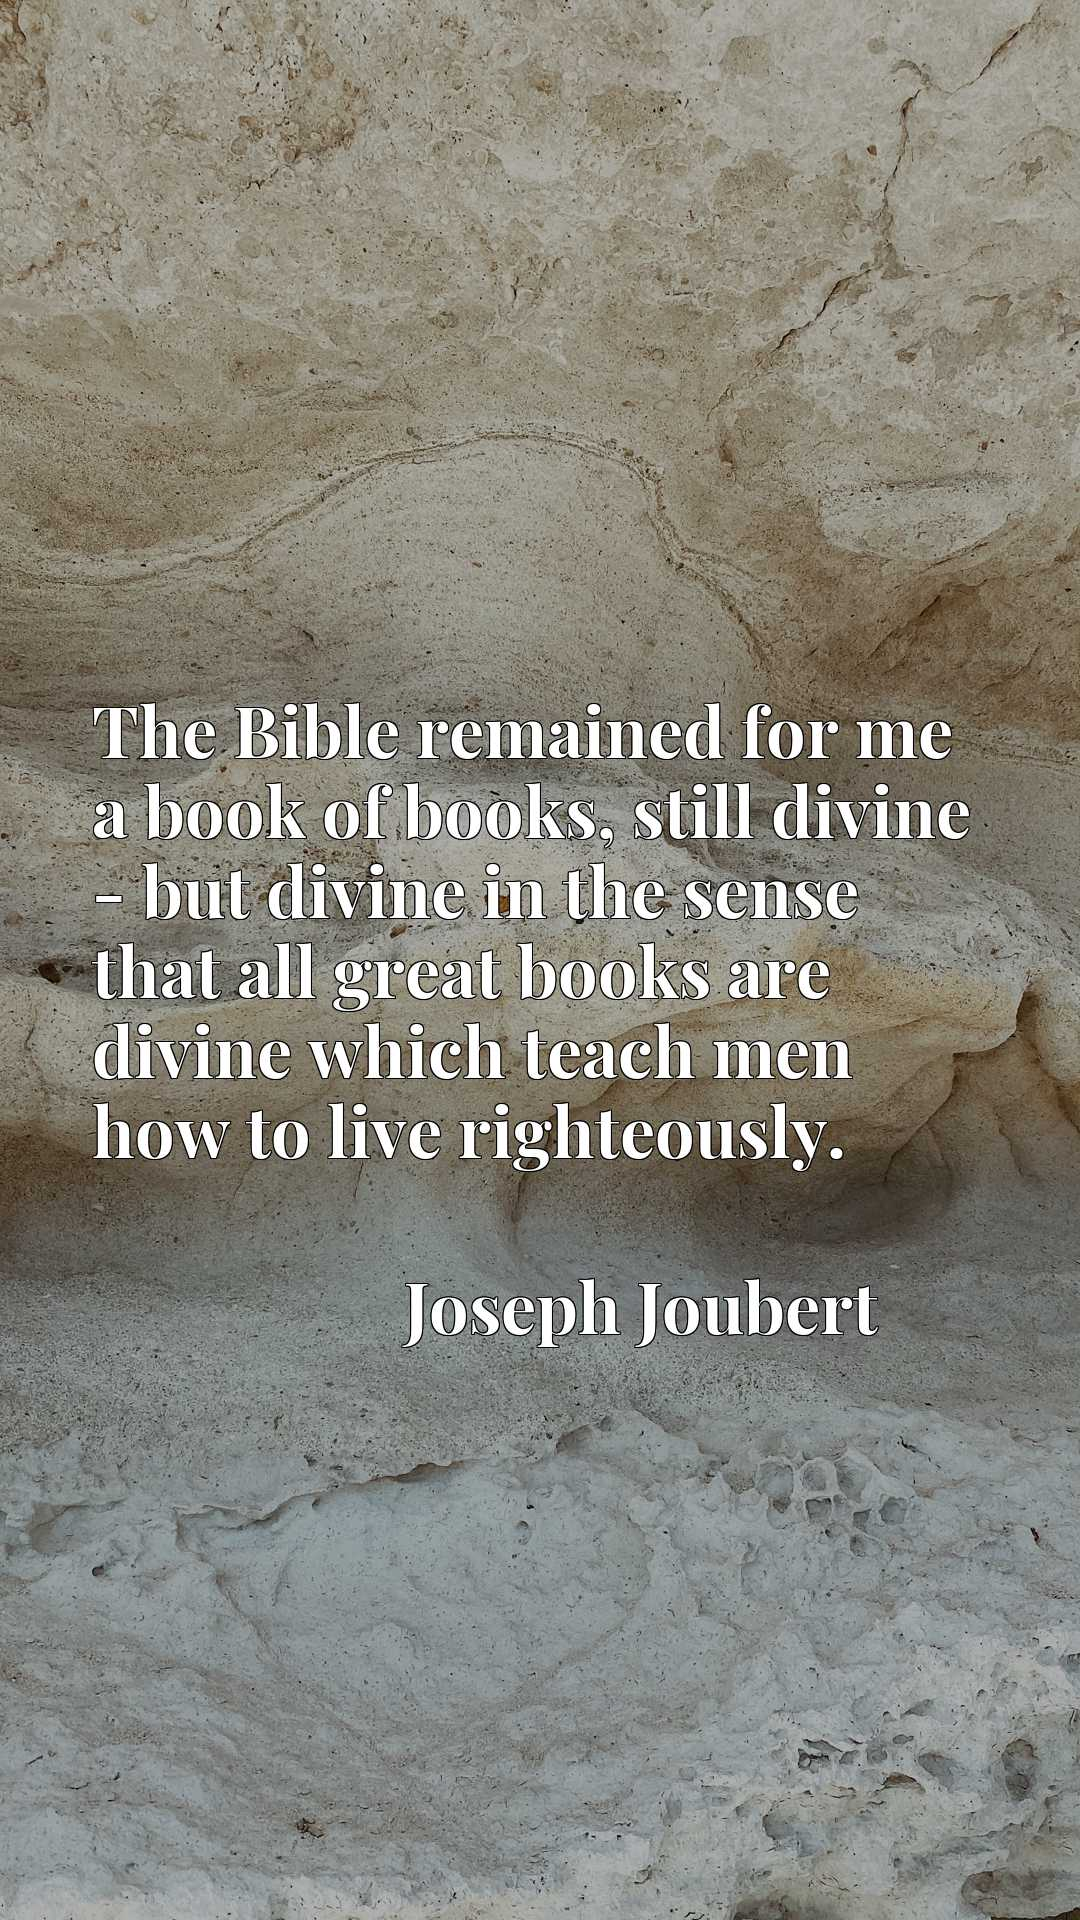 The Bible remained for me a book of books, still divine - but divine in the sense that all great books are divine which teach men how to live righteously.